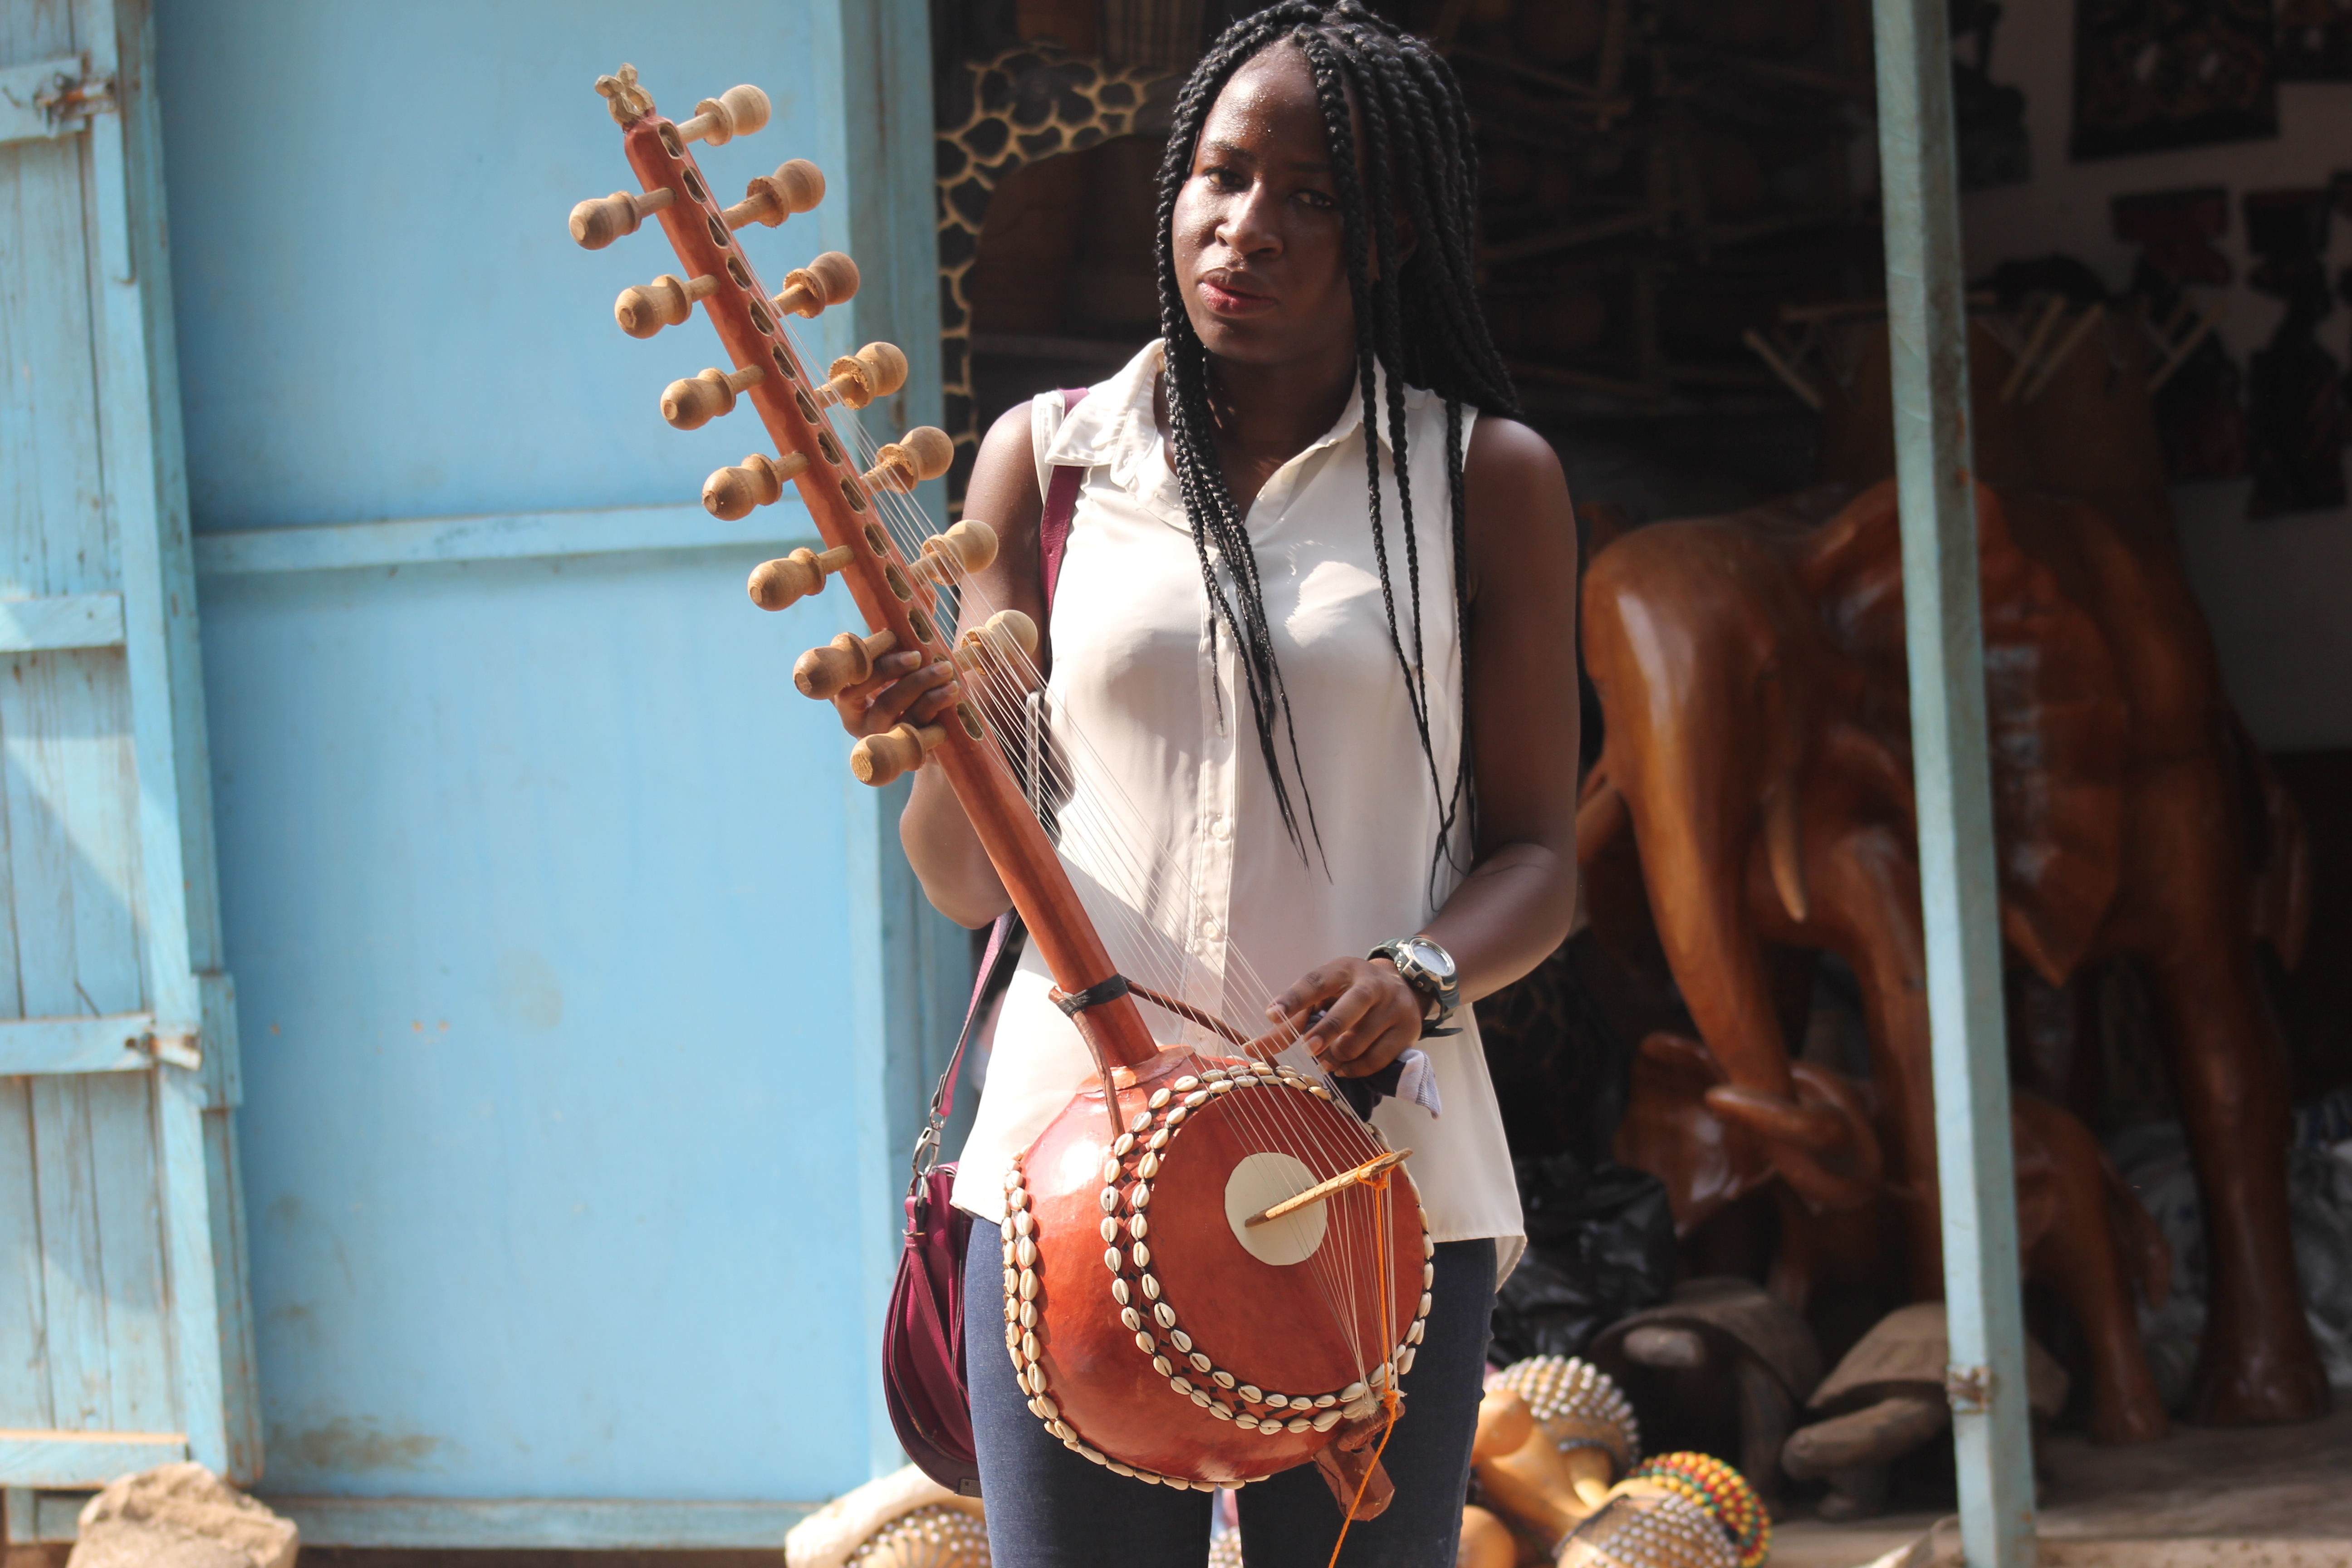 File:Ghana traditional guitar jpg - Wikimedia Commons